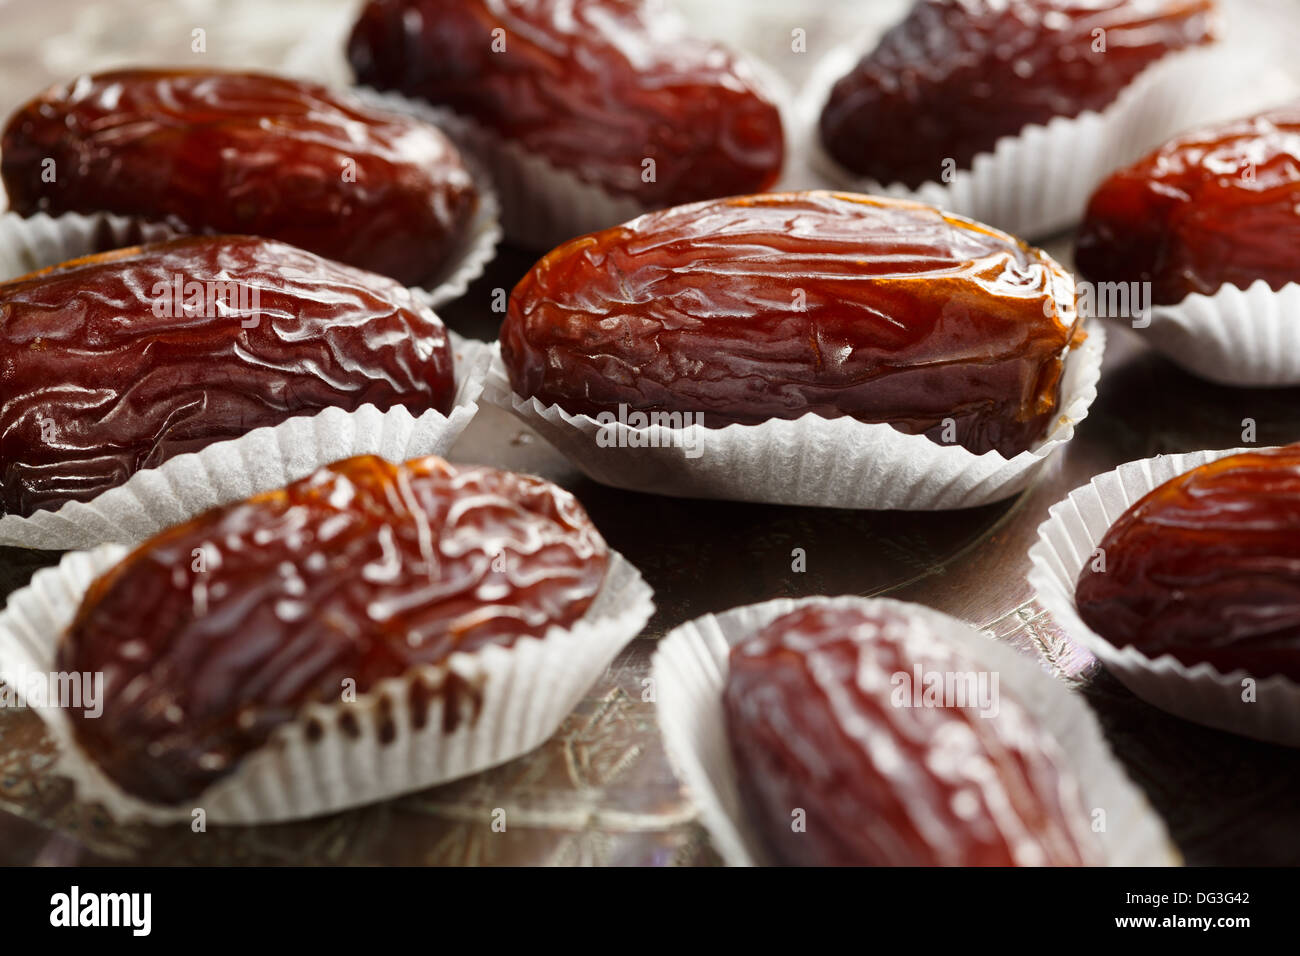 Medjoul or Medjool dates - Stock Image